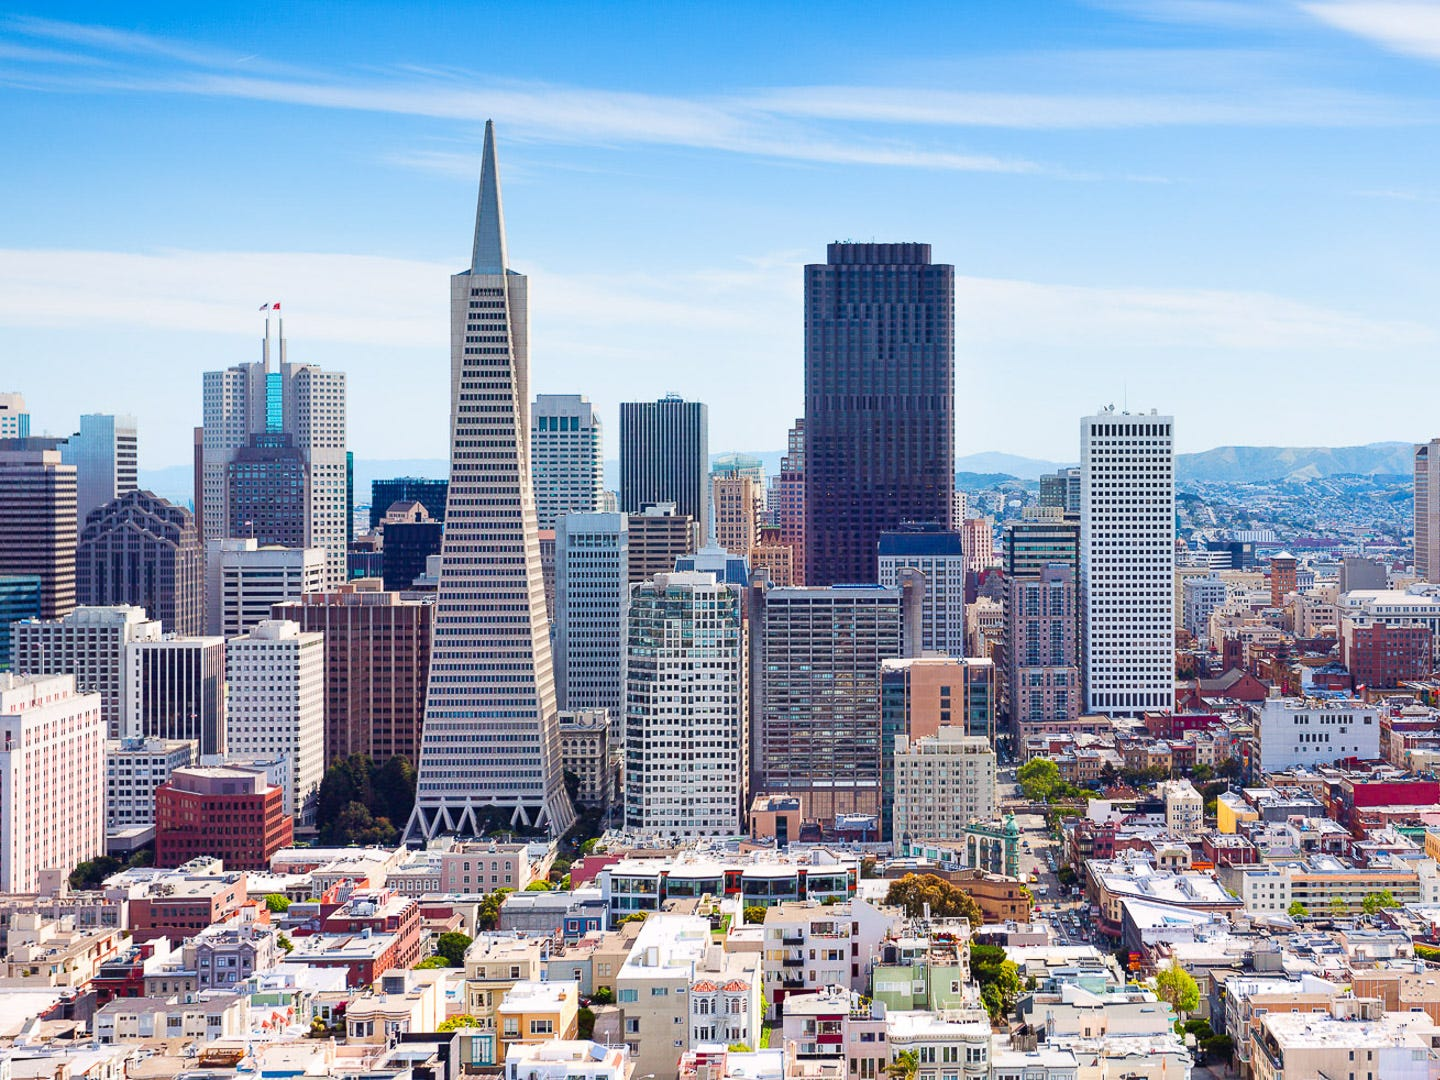 No. 6: San Francisco. Thanksgiving trip cost: $920.50.  Christmas trip cost: $969. With its reputation for being expensive, San Francisco might not seem like it would be near the top of a list for cheap Christmas trips. However, it can be a bargain in the winter. You can find cheap round-trip Thanksgiving flights to San Francisco, with an average cost of $254.50 — the third lowest of all the destinations in this study. It's also the third-cheapest to get to during Christmas when round-trip flights cost an average of $257.